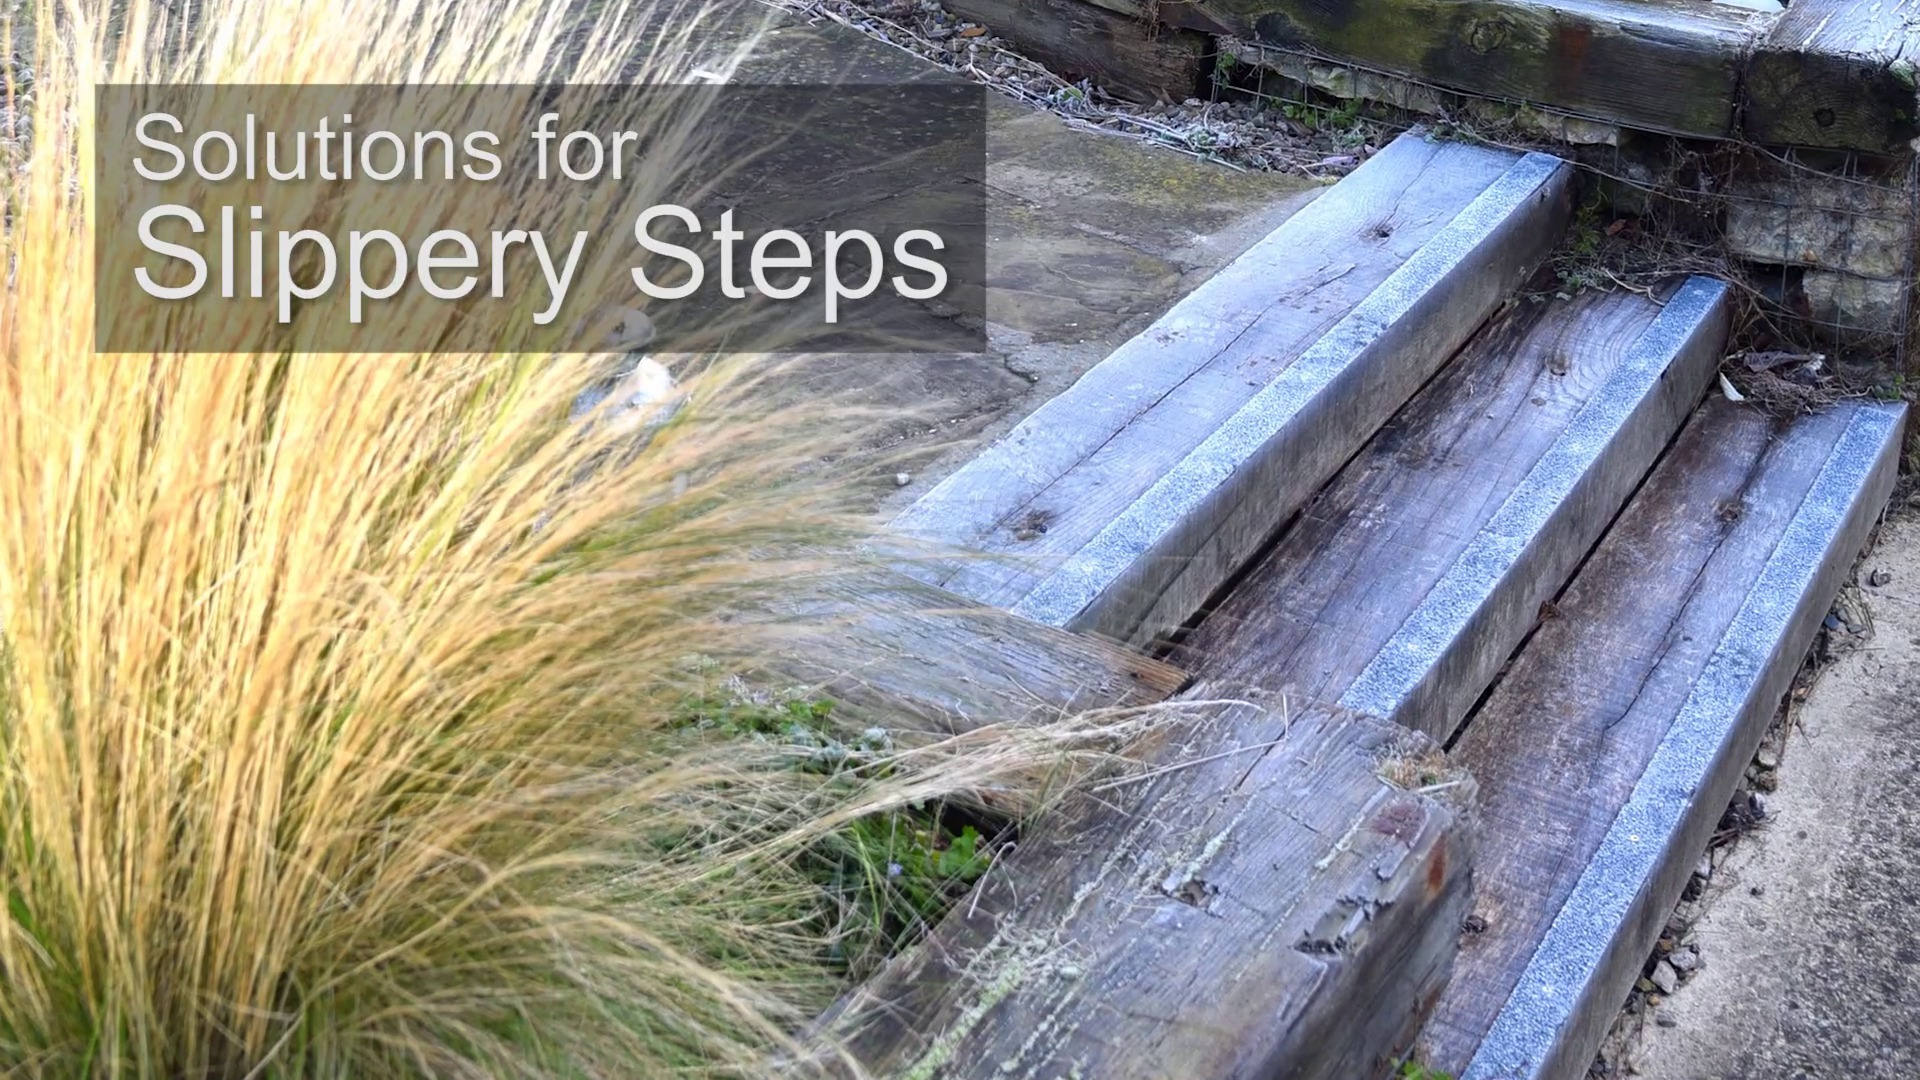 Solutions For Slippery Steps. Video Thumbnail